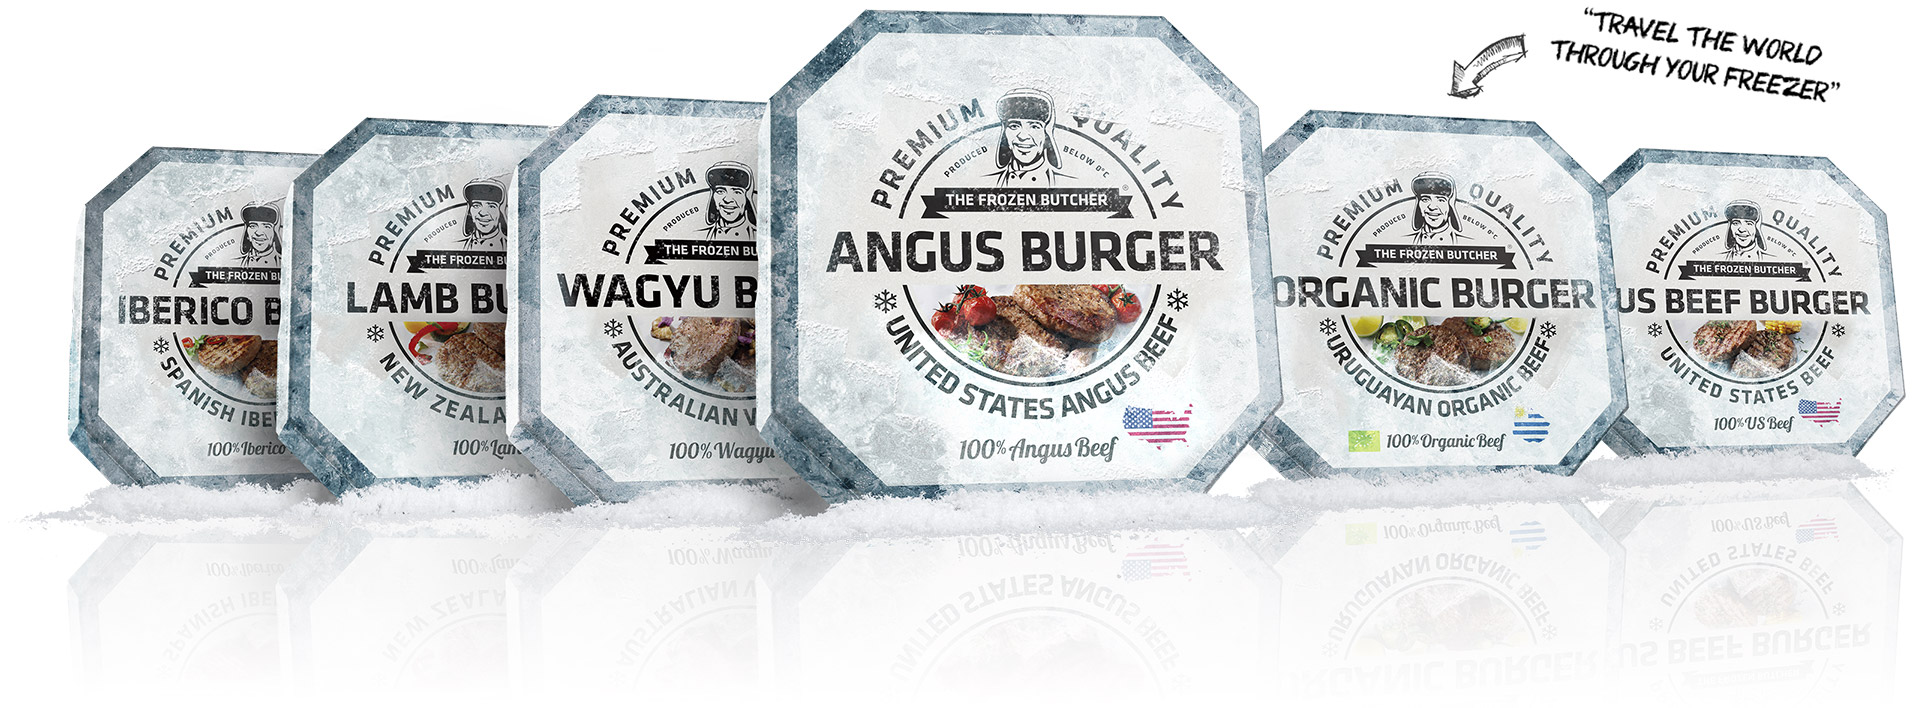 The Frozen Butcher Product Range